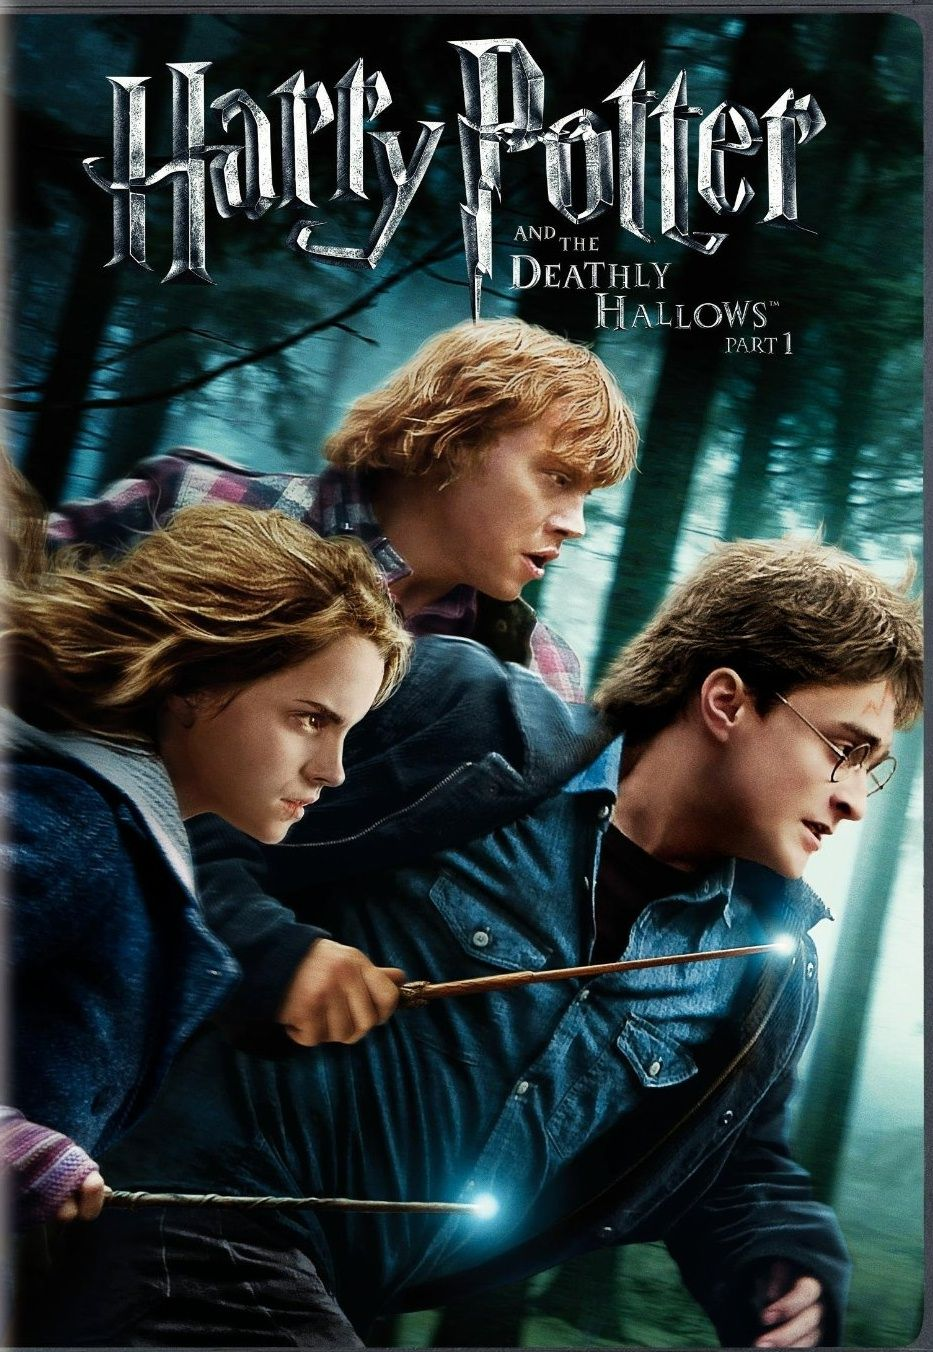 Harry Potter And The Deathly Hallows Part 1 Deathly Hallows Part 1 Harry Potter Movies Harry Potter